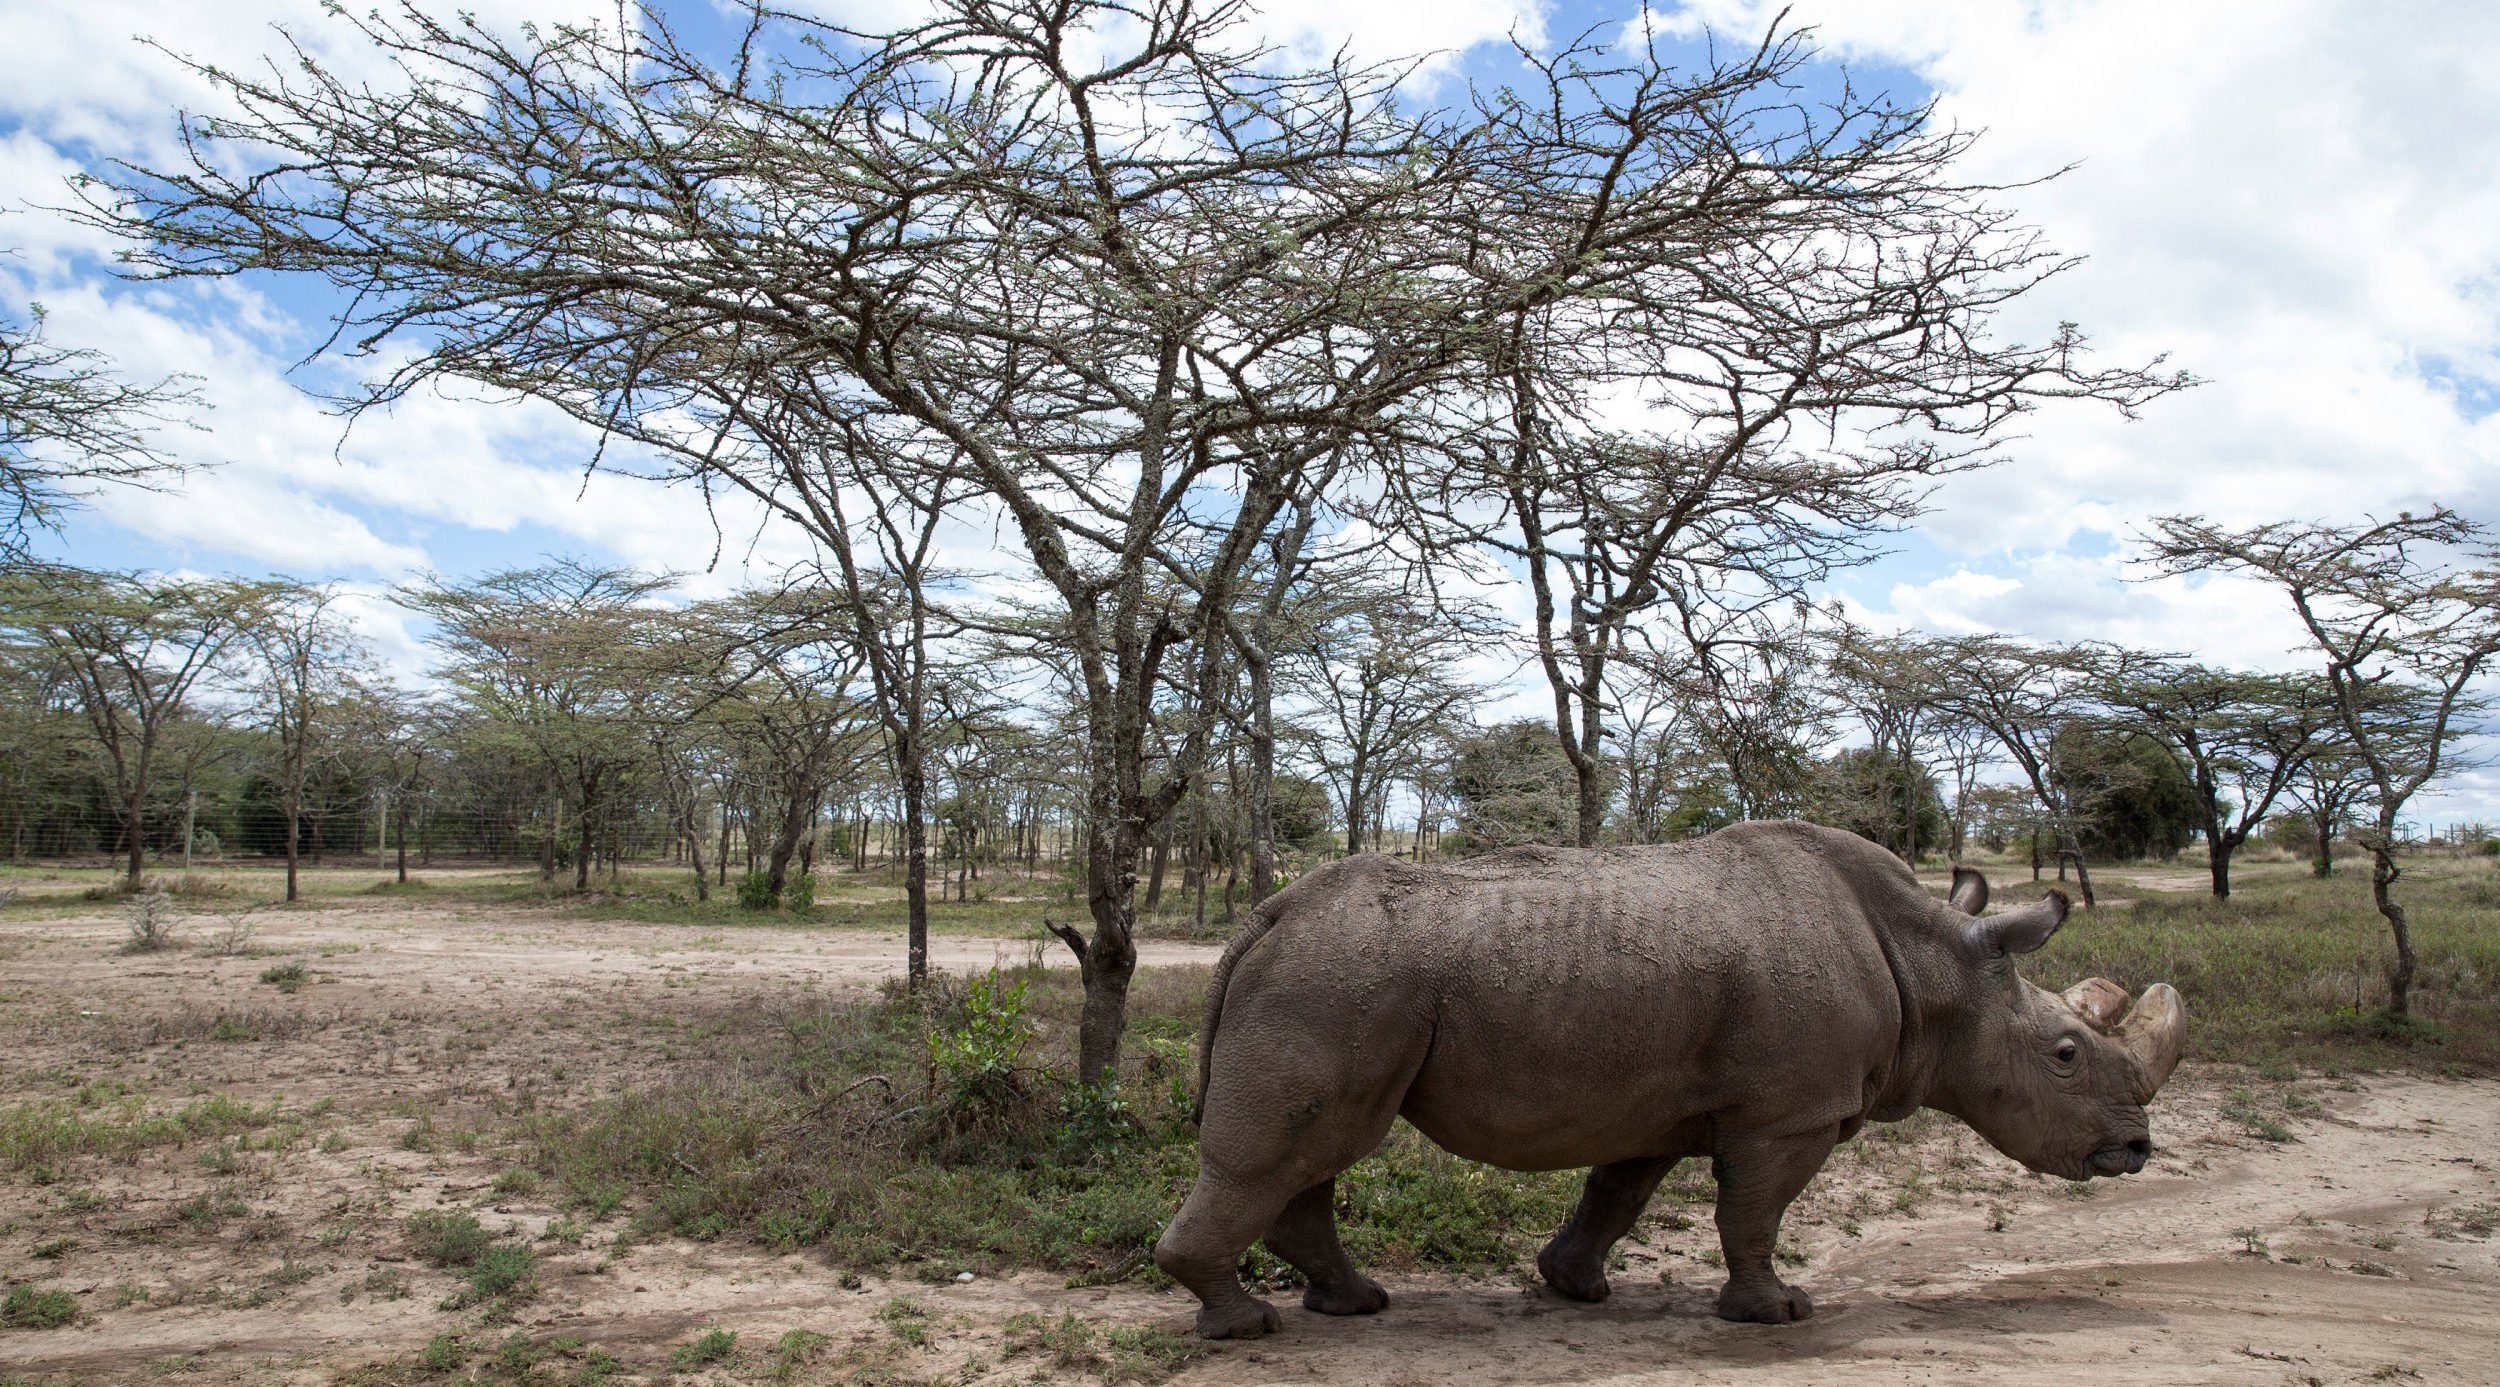 FILE PHOTO: Sudan, the last surviving male northern white rhino, grazes at the Ol Pejeta Conservancy in Laikipia National Park, Kenya May 3, 2017. REUTERS/Baz Ratner/File Photo